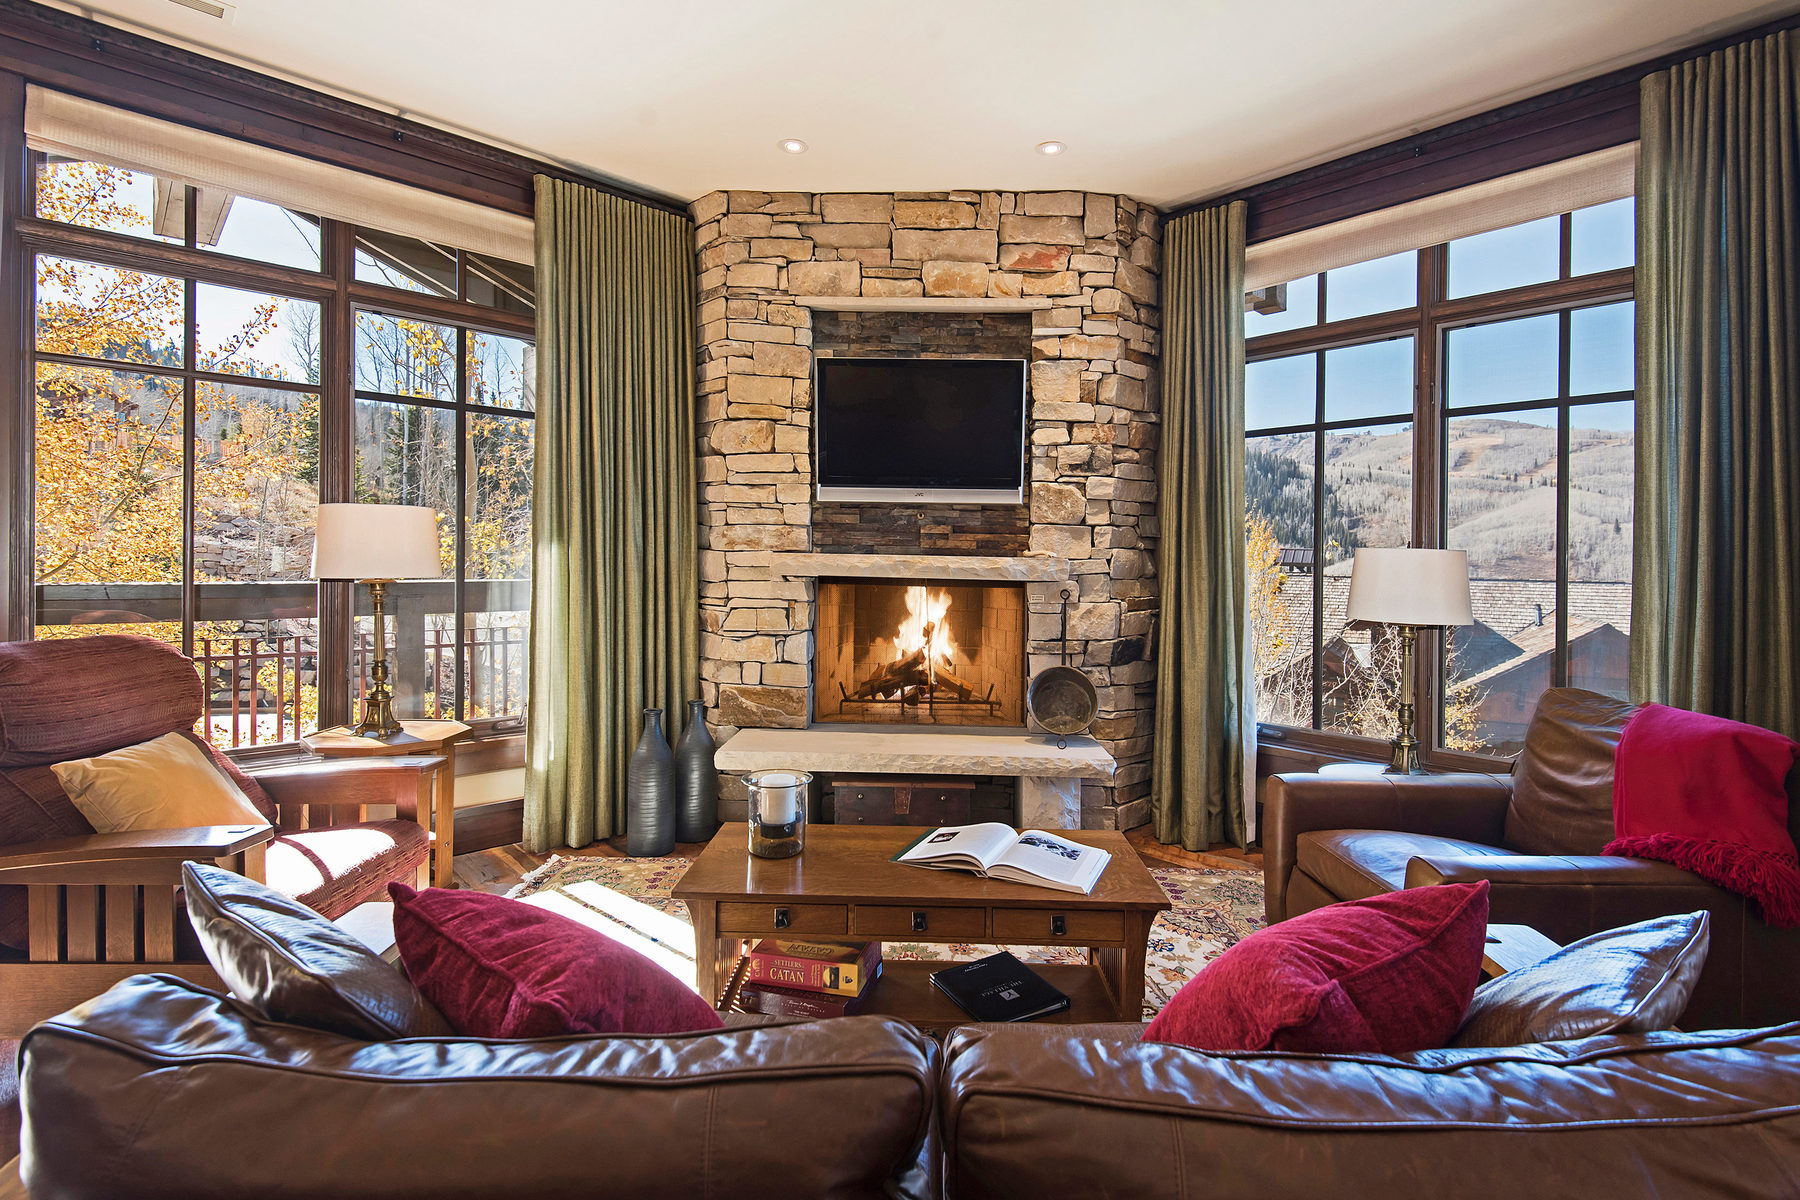 sales property at Deer Valley's Arrowleaf - A great Ski In/Out Value